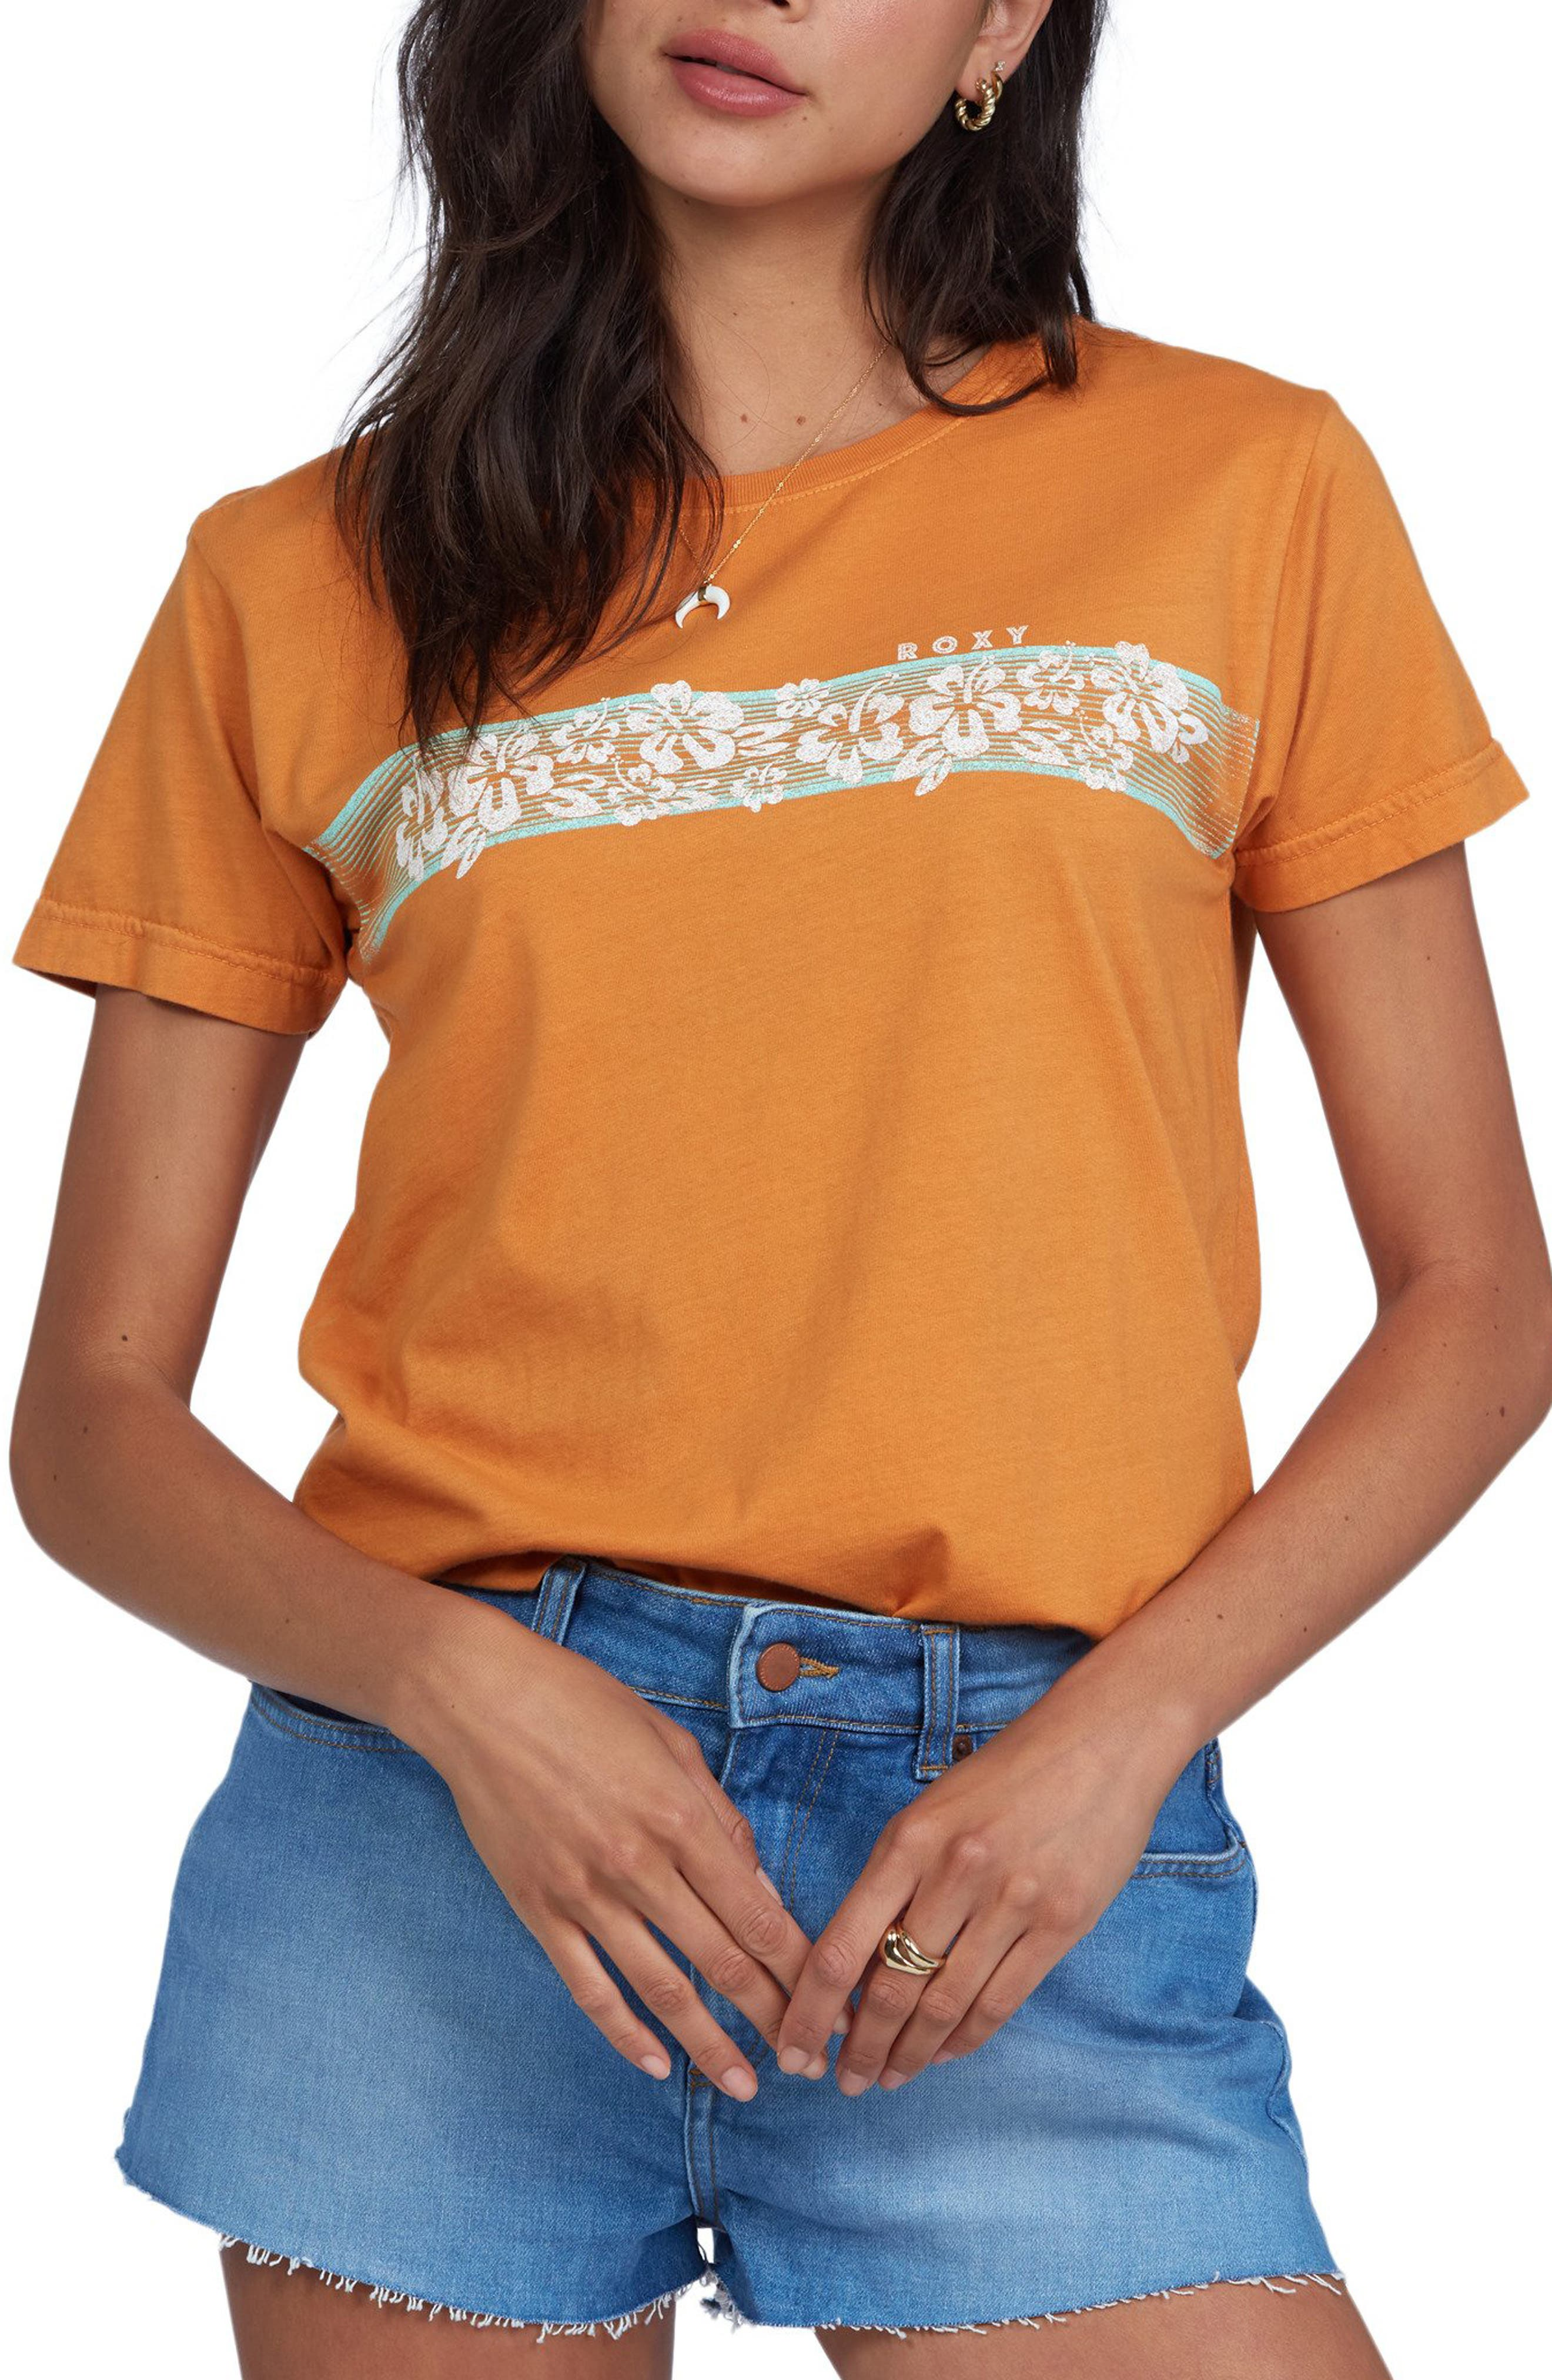 1980s Clothing, Fashion | 80s Style Clothes Womens Roxy Retro Hibiscus Stripe Graphic Tee Size Large - Orange $25.00 AT vintagedancer.com